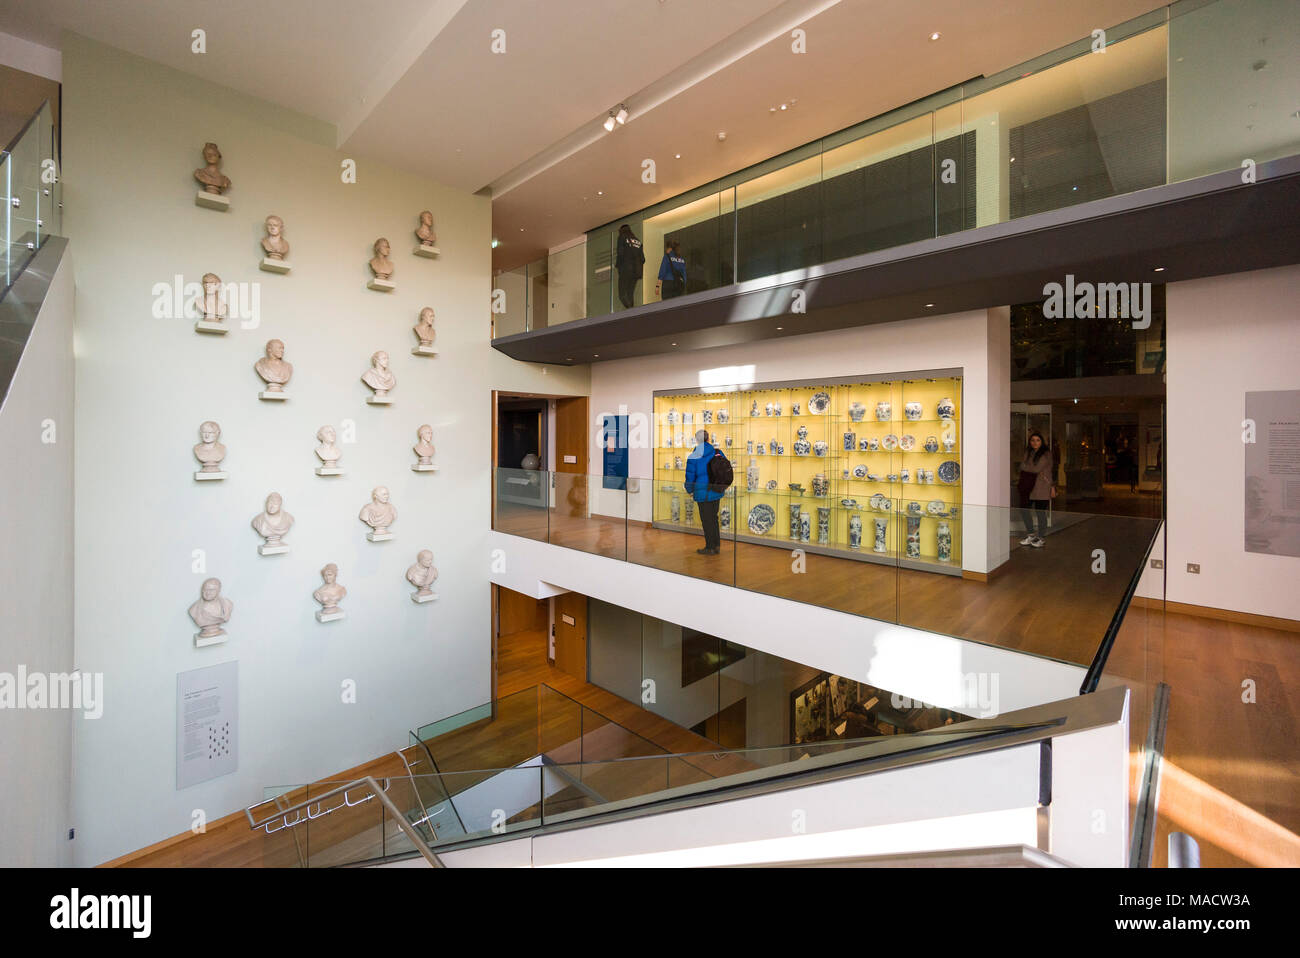 Oxford. England. The Ashmolean Museum, the Sir Francis Chantrey busts and the staircase.  Between 2006-2009, the museum was expanded to the designs of - Stock Image